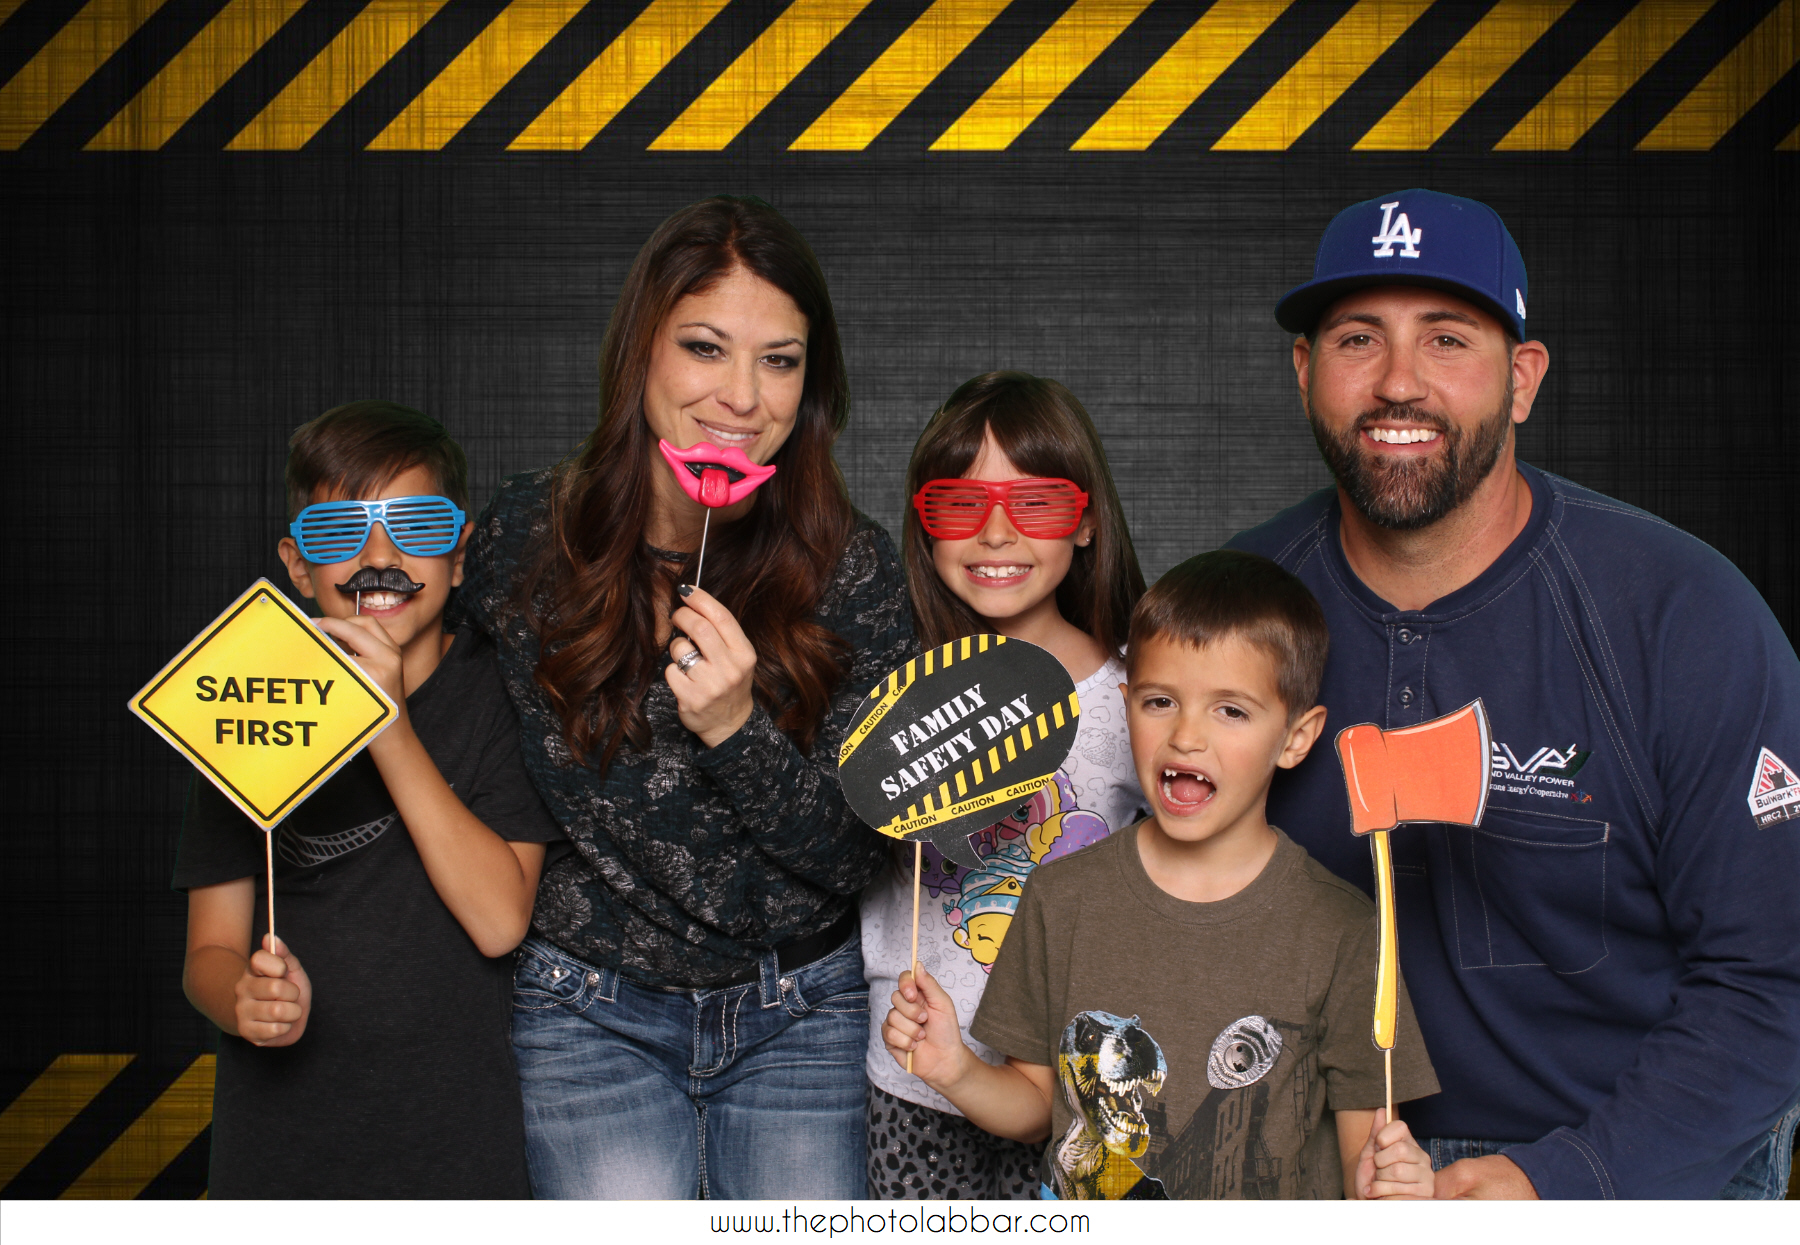 Family Safety Day 2017